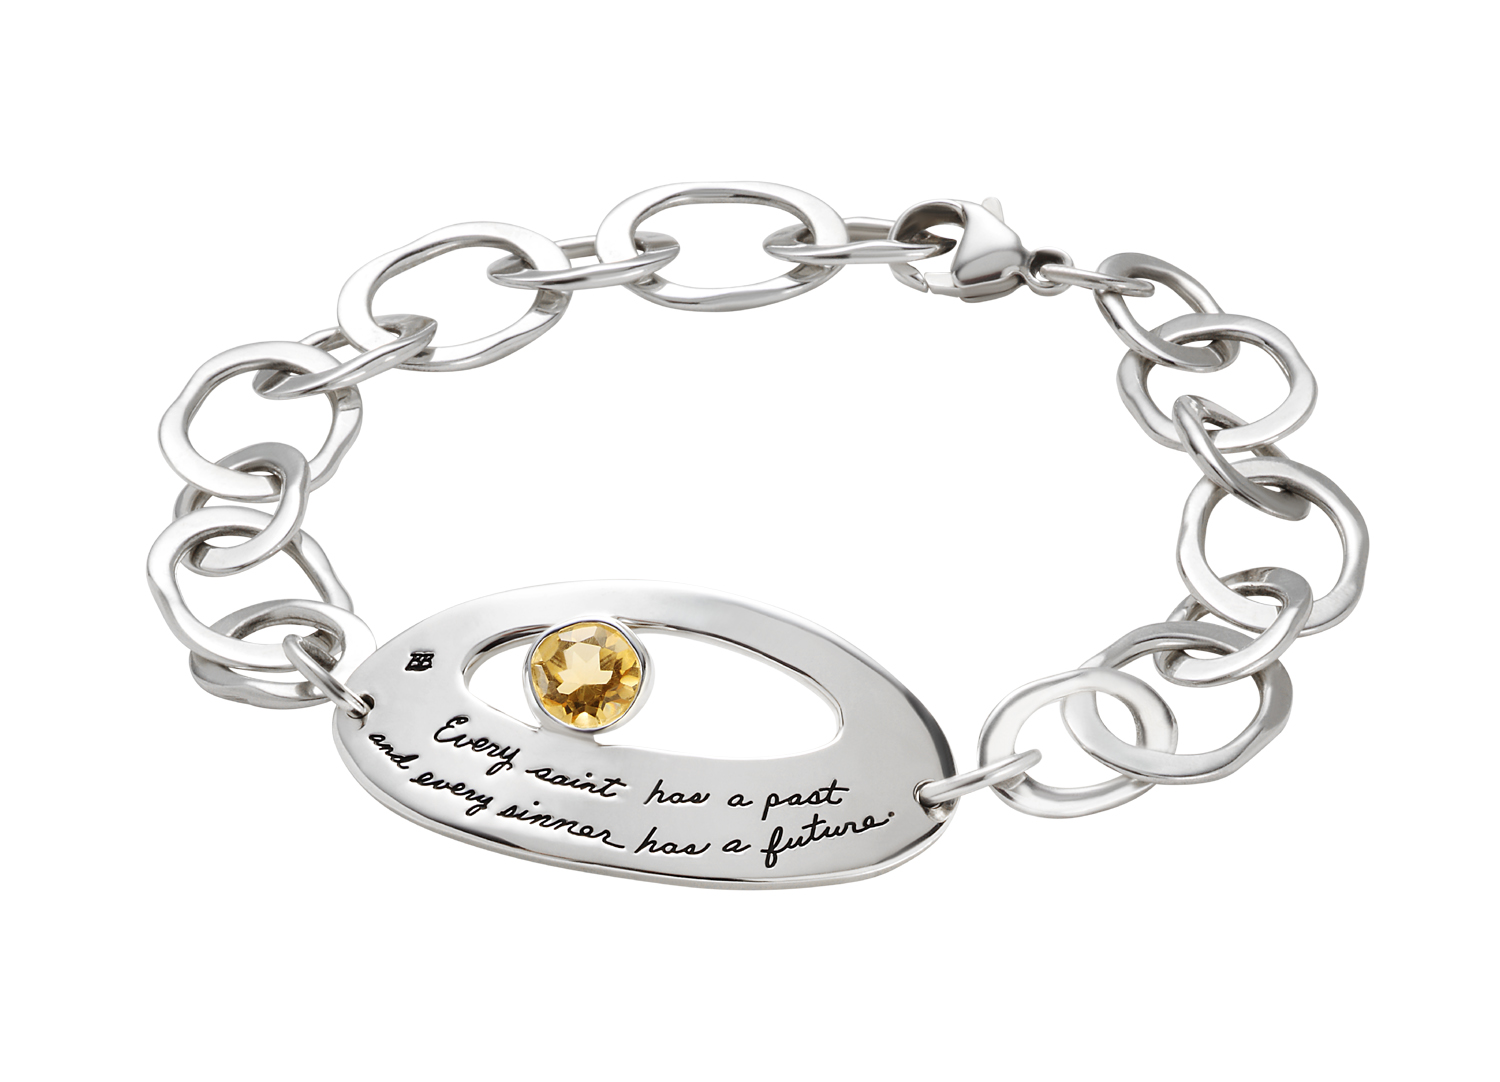 Sterling silver link bracelet with large oval plaque engraved Every Saint has a past and every Sinner has a Future with yellow citrine in oval cutout.